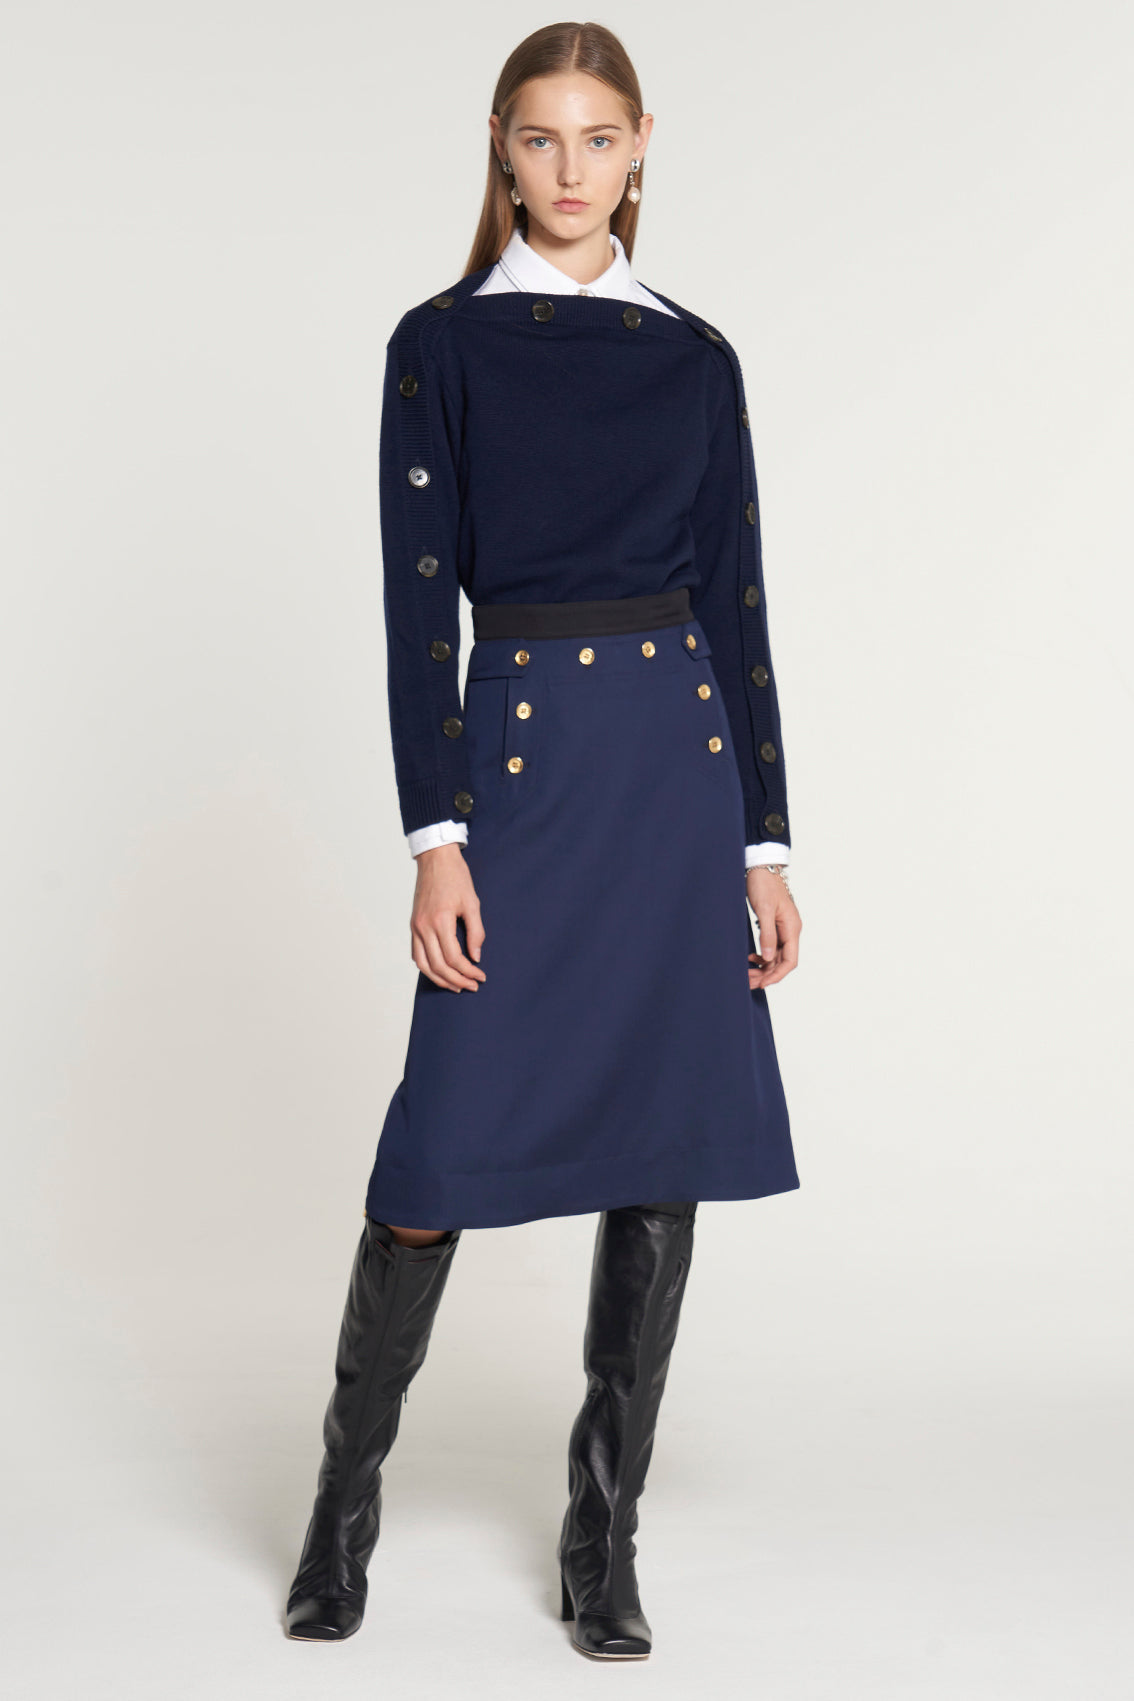 Navy Sailor Skirt